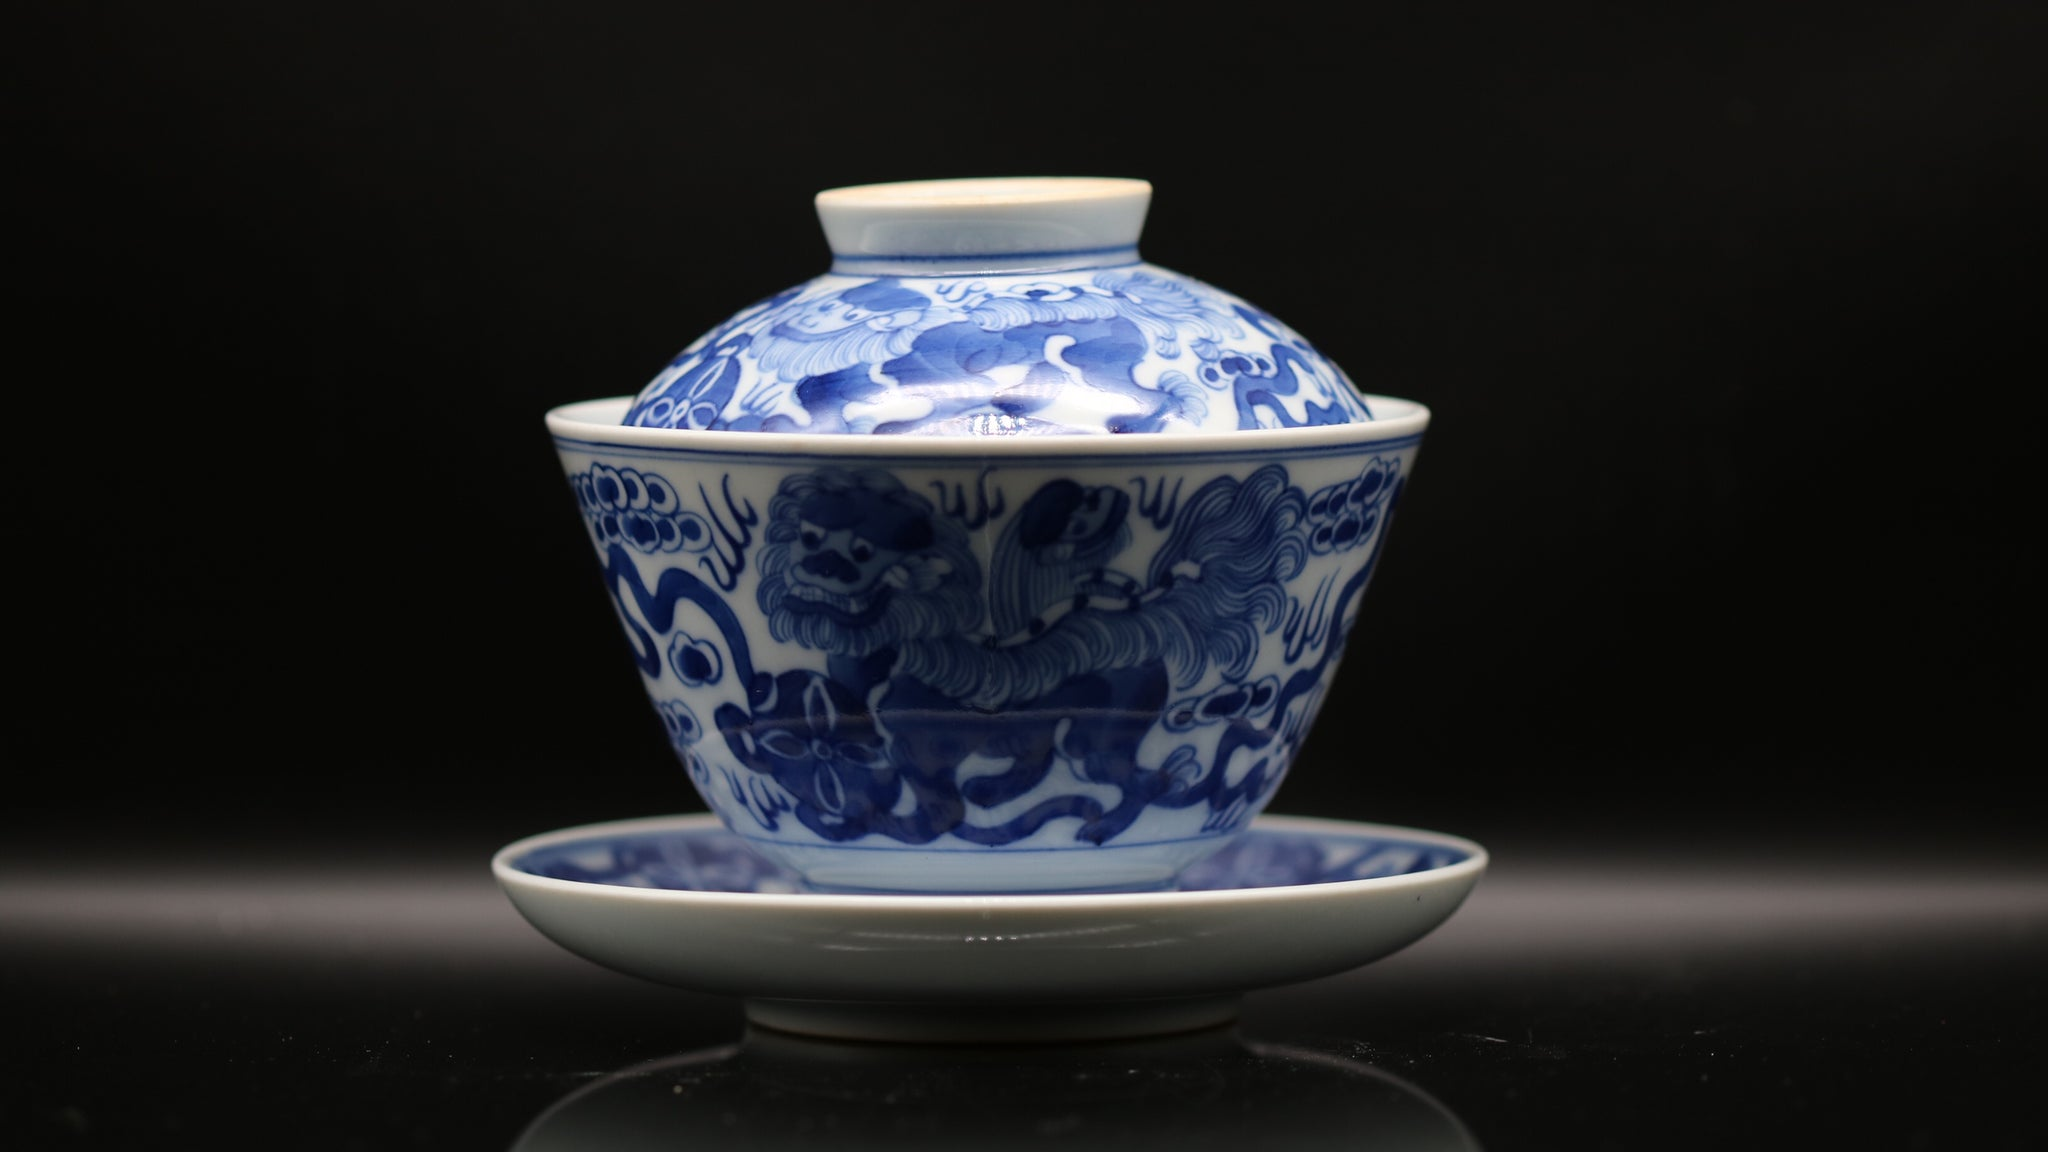 Han Yao Blue and White Kirin 'Auspicious Lion' Gaiwan